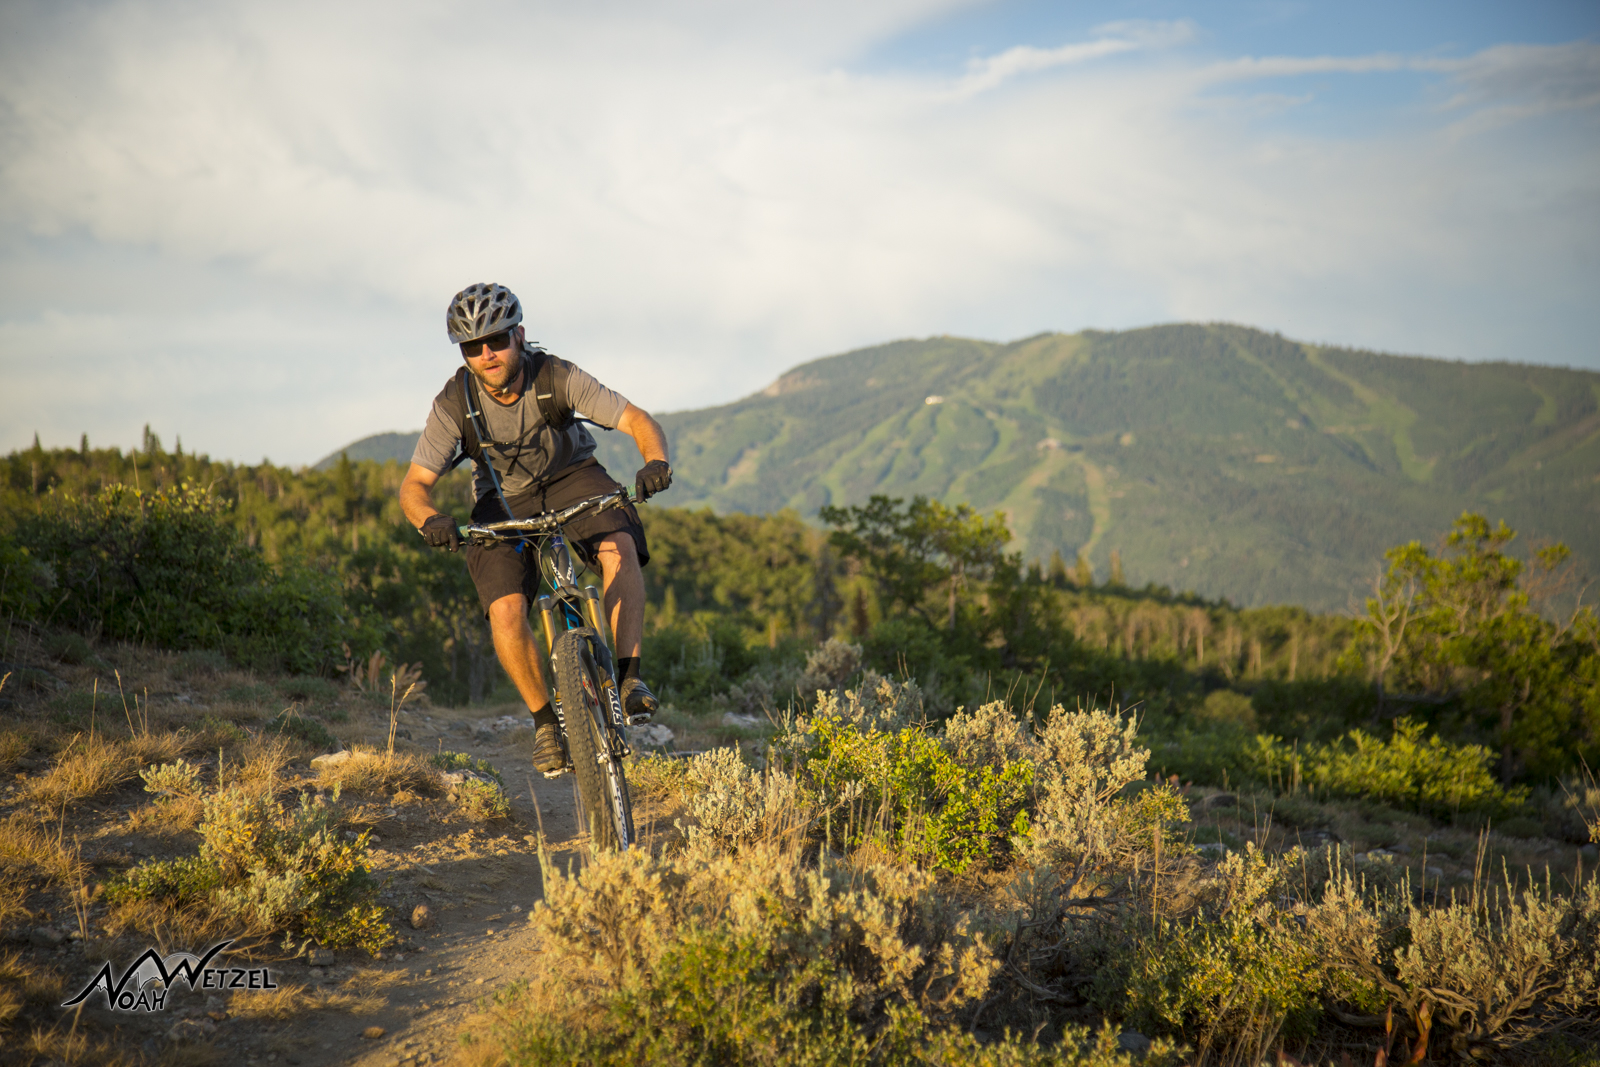 Jared Terrio riding on the Beall Trail. Emerald Mountain. Steamboat Springs, Colorado.